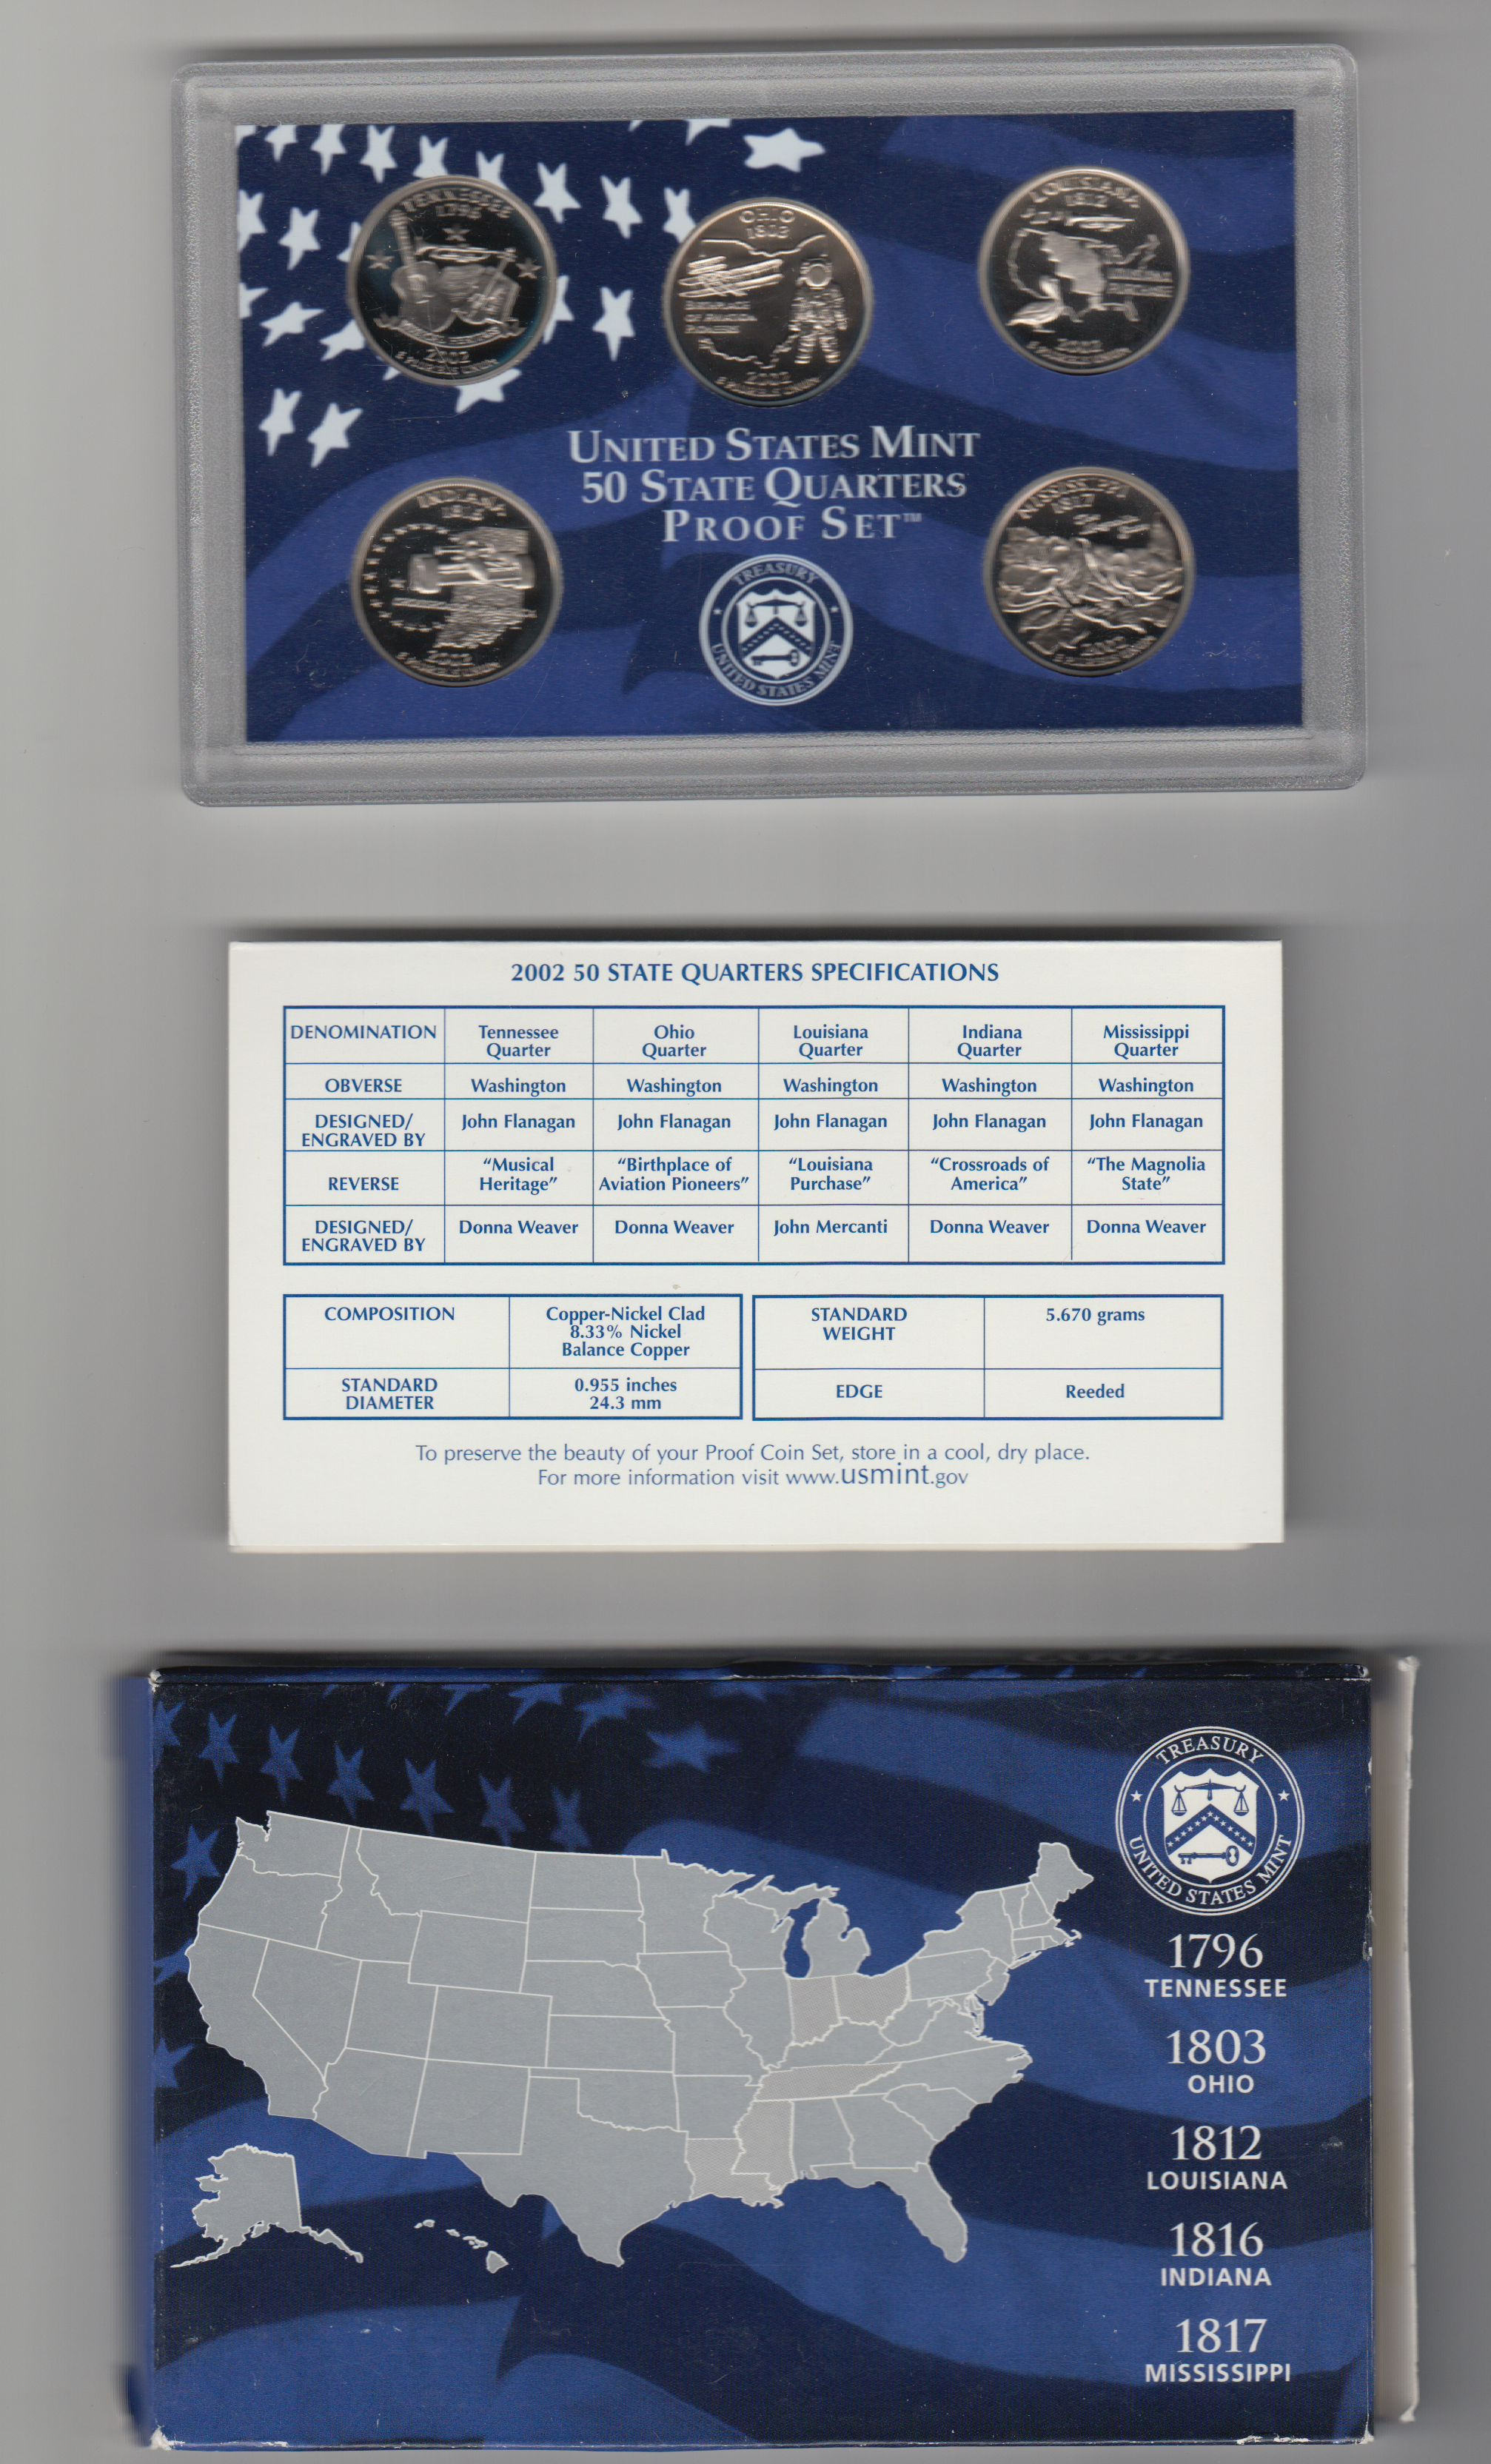 Best Of Value Of Usa 5 Coins 50 State Quarters Proof Set U S State Quarter Set Value Of New 2007 P & D United States Mint Uncirculated Coin Set State Quarter Set Value